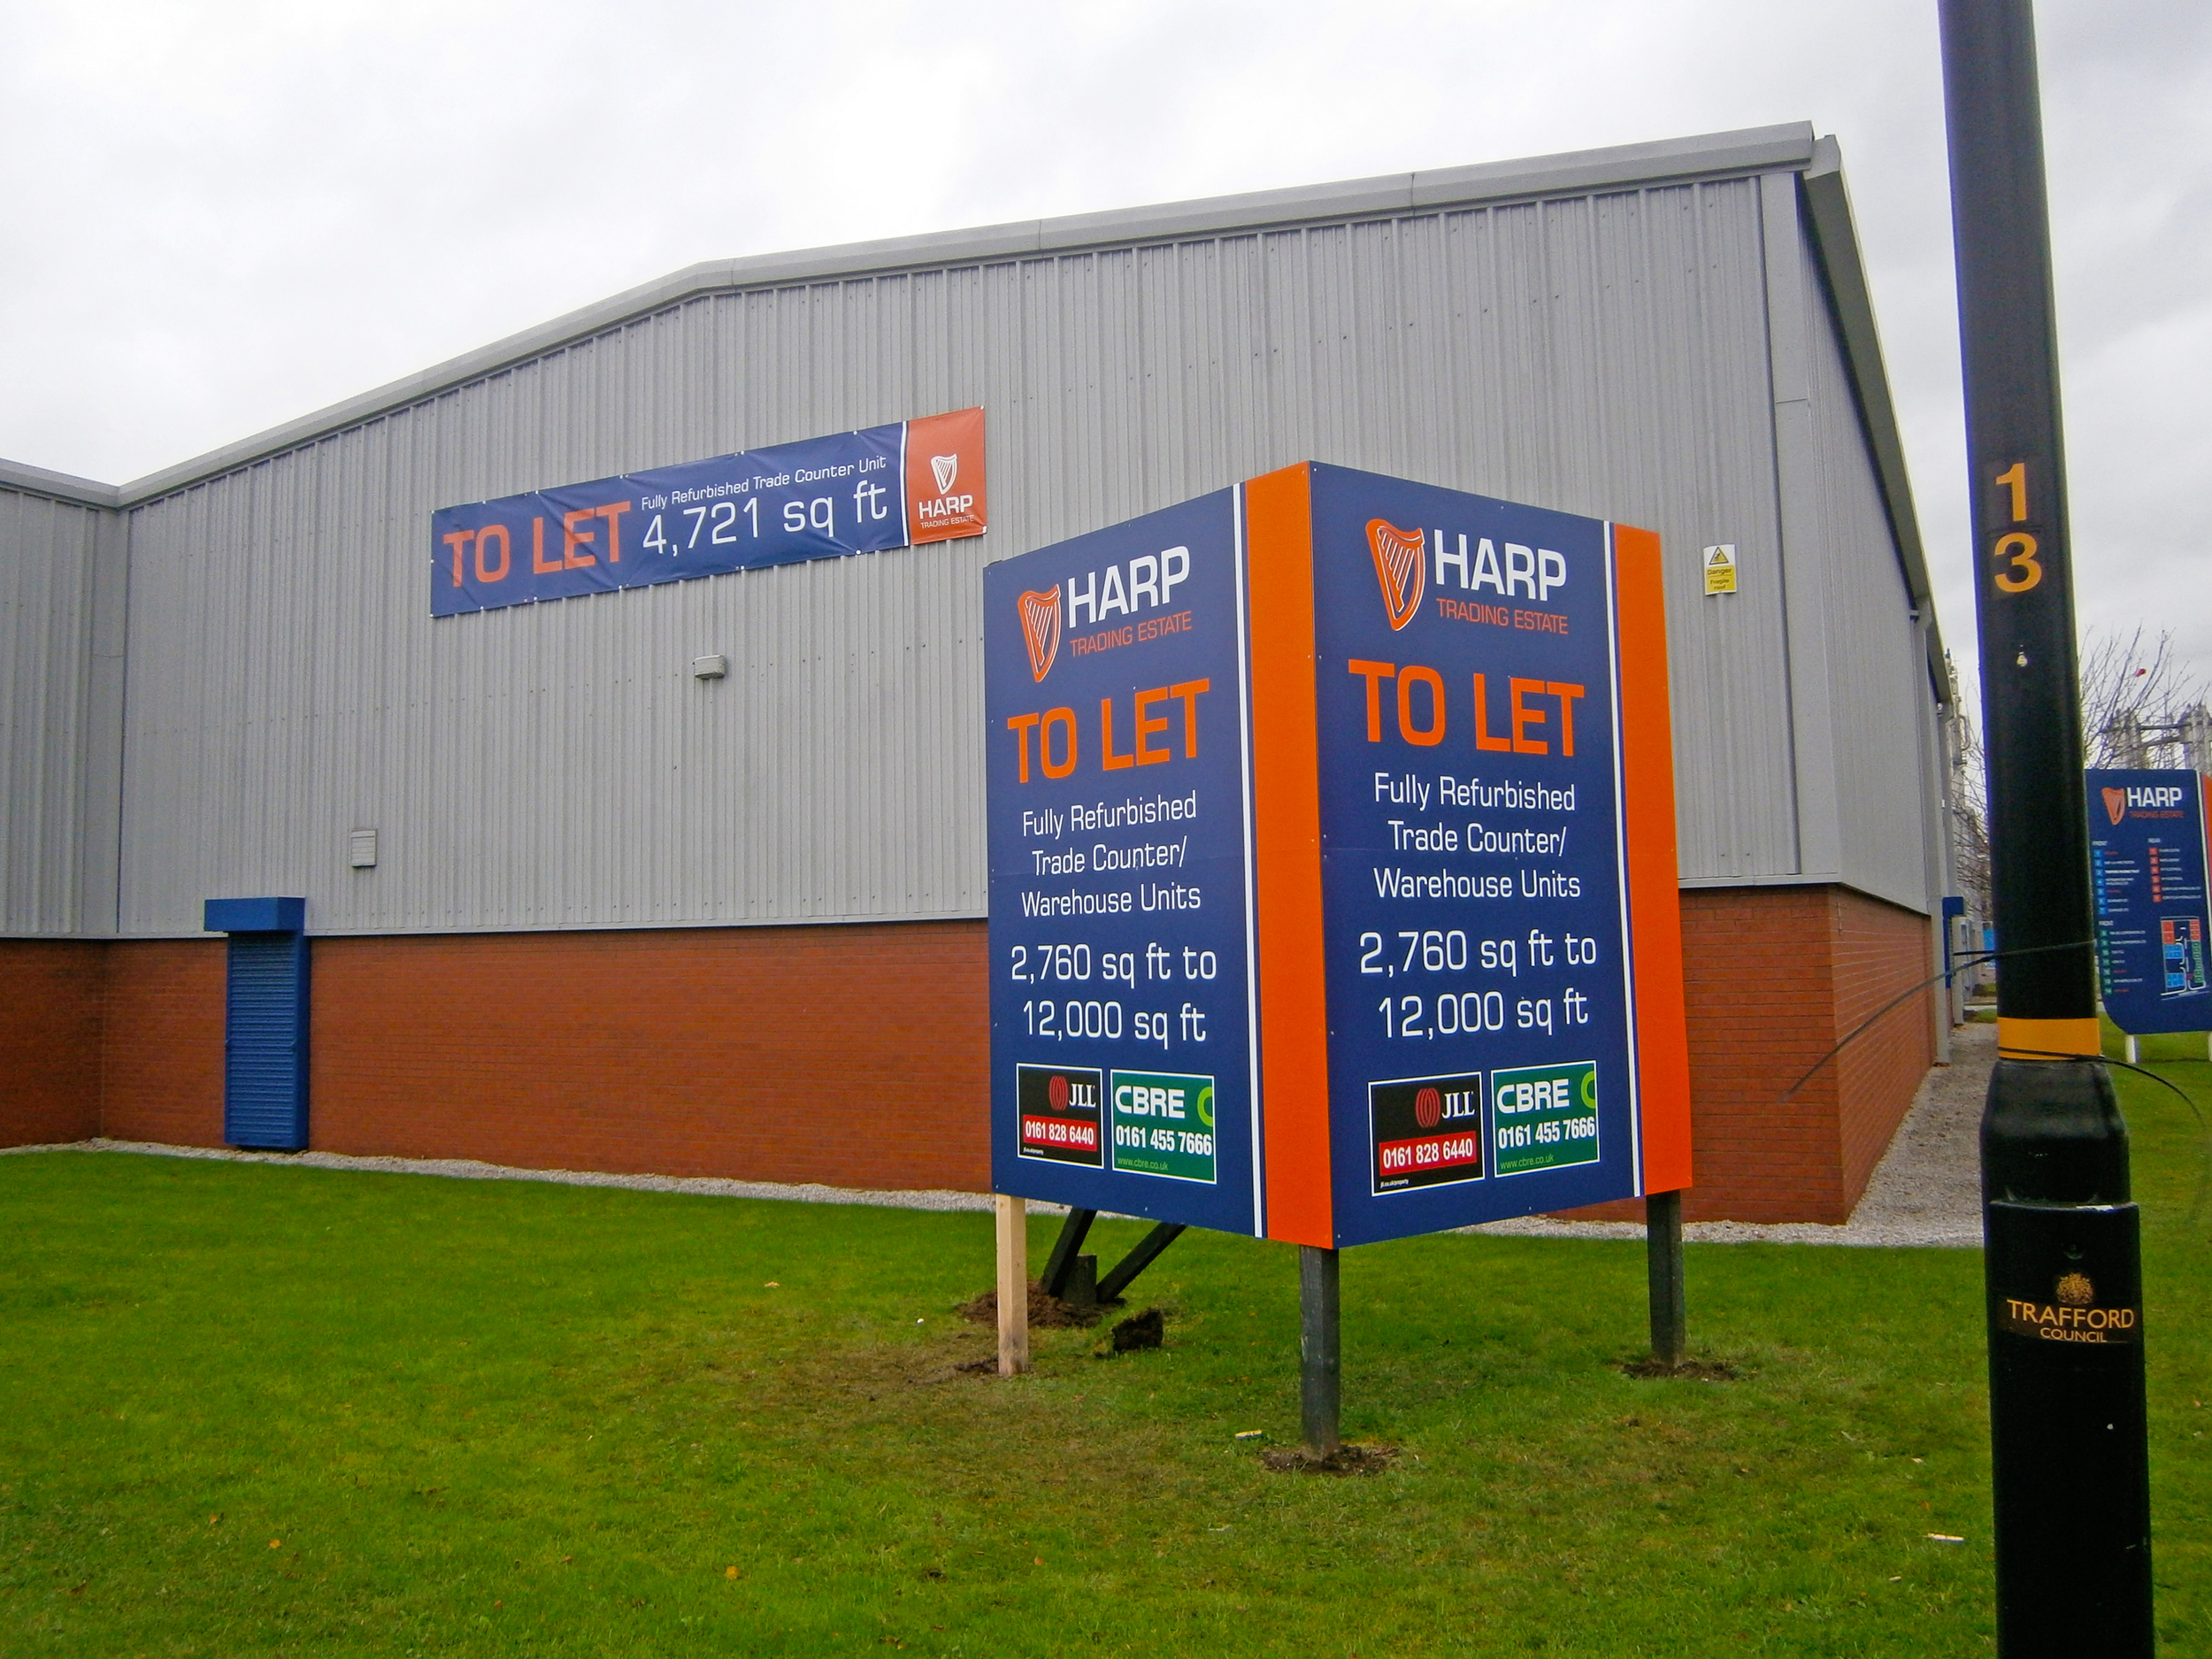 Free standing entrance sign and promotional banners